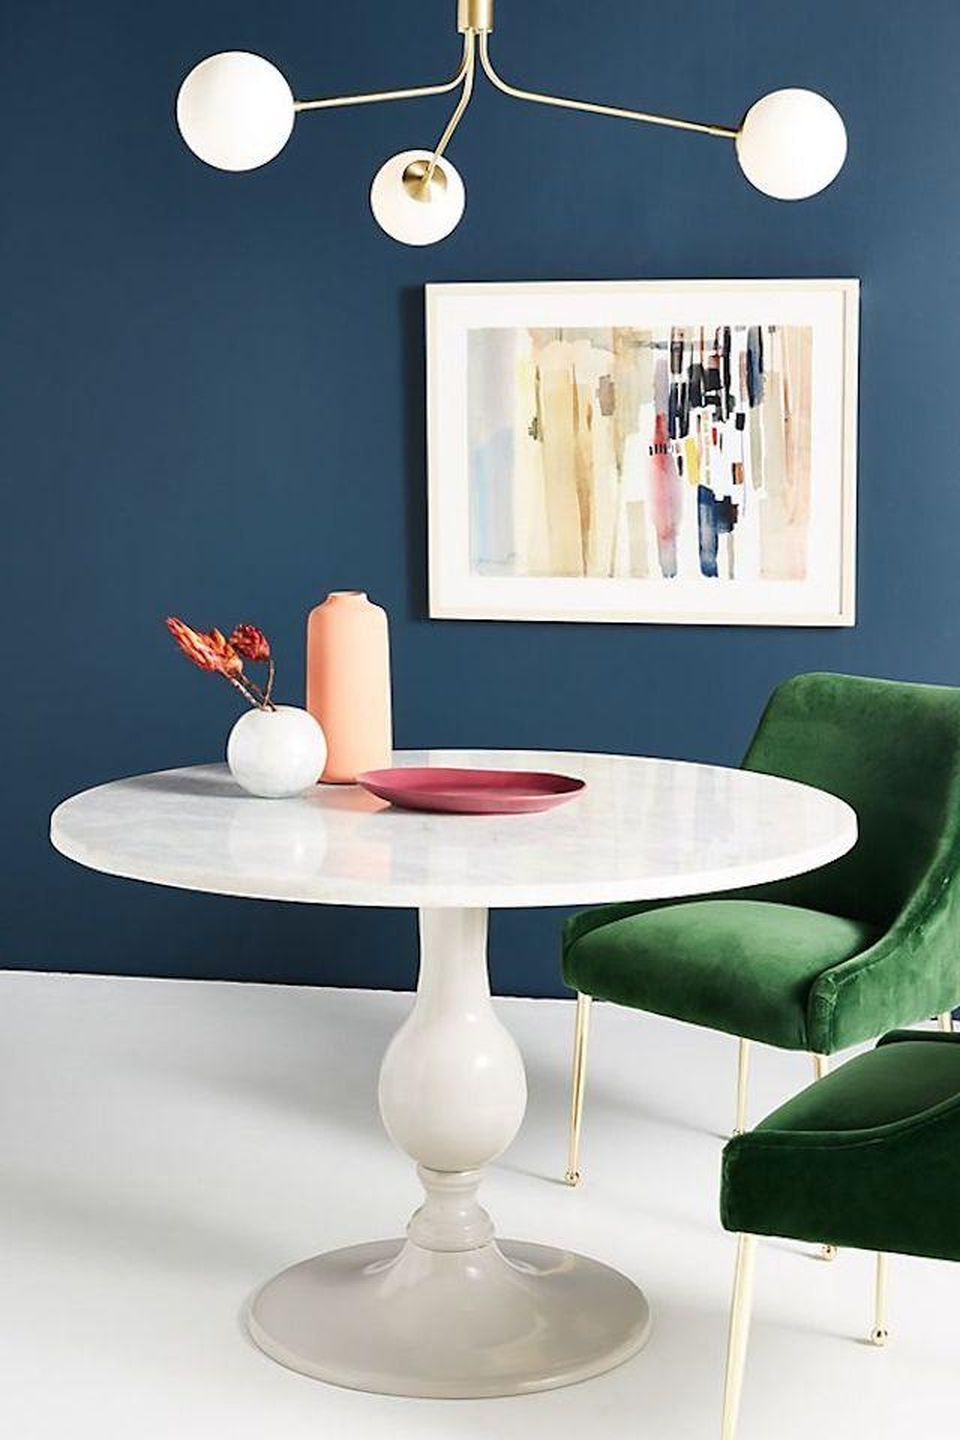 Best and Newest 7 Round Dining Room Tables Perfect For Small Spaces within Solid Wood Circular Dining Tables White